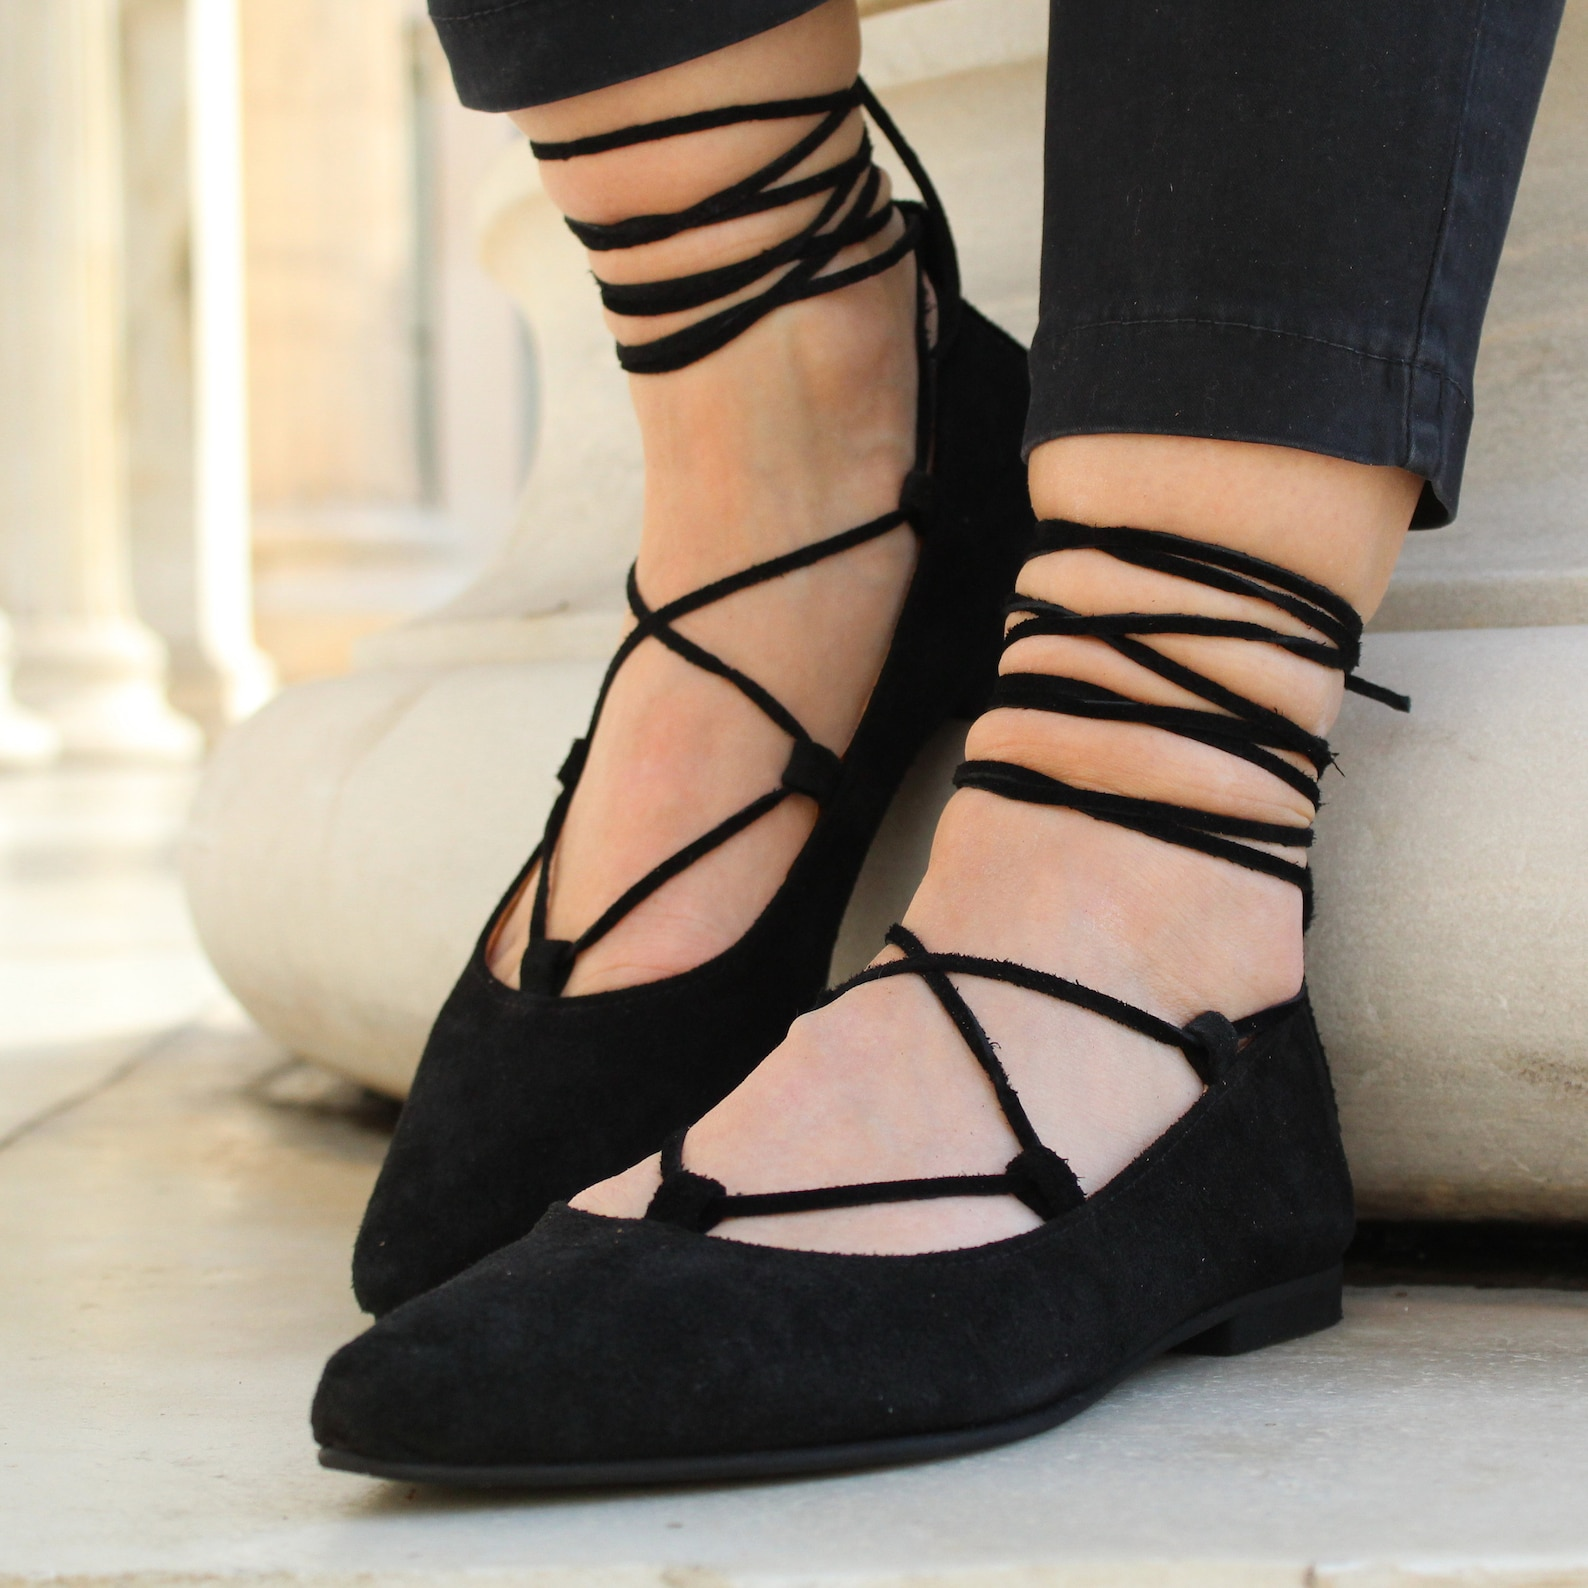 womens flat shoes, shoes, ballet shoes, leather shoes, made in greece, handmade items, greek sandals, gladiotar shoes, leather b